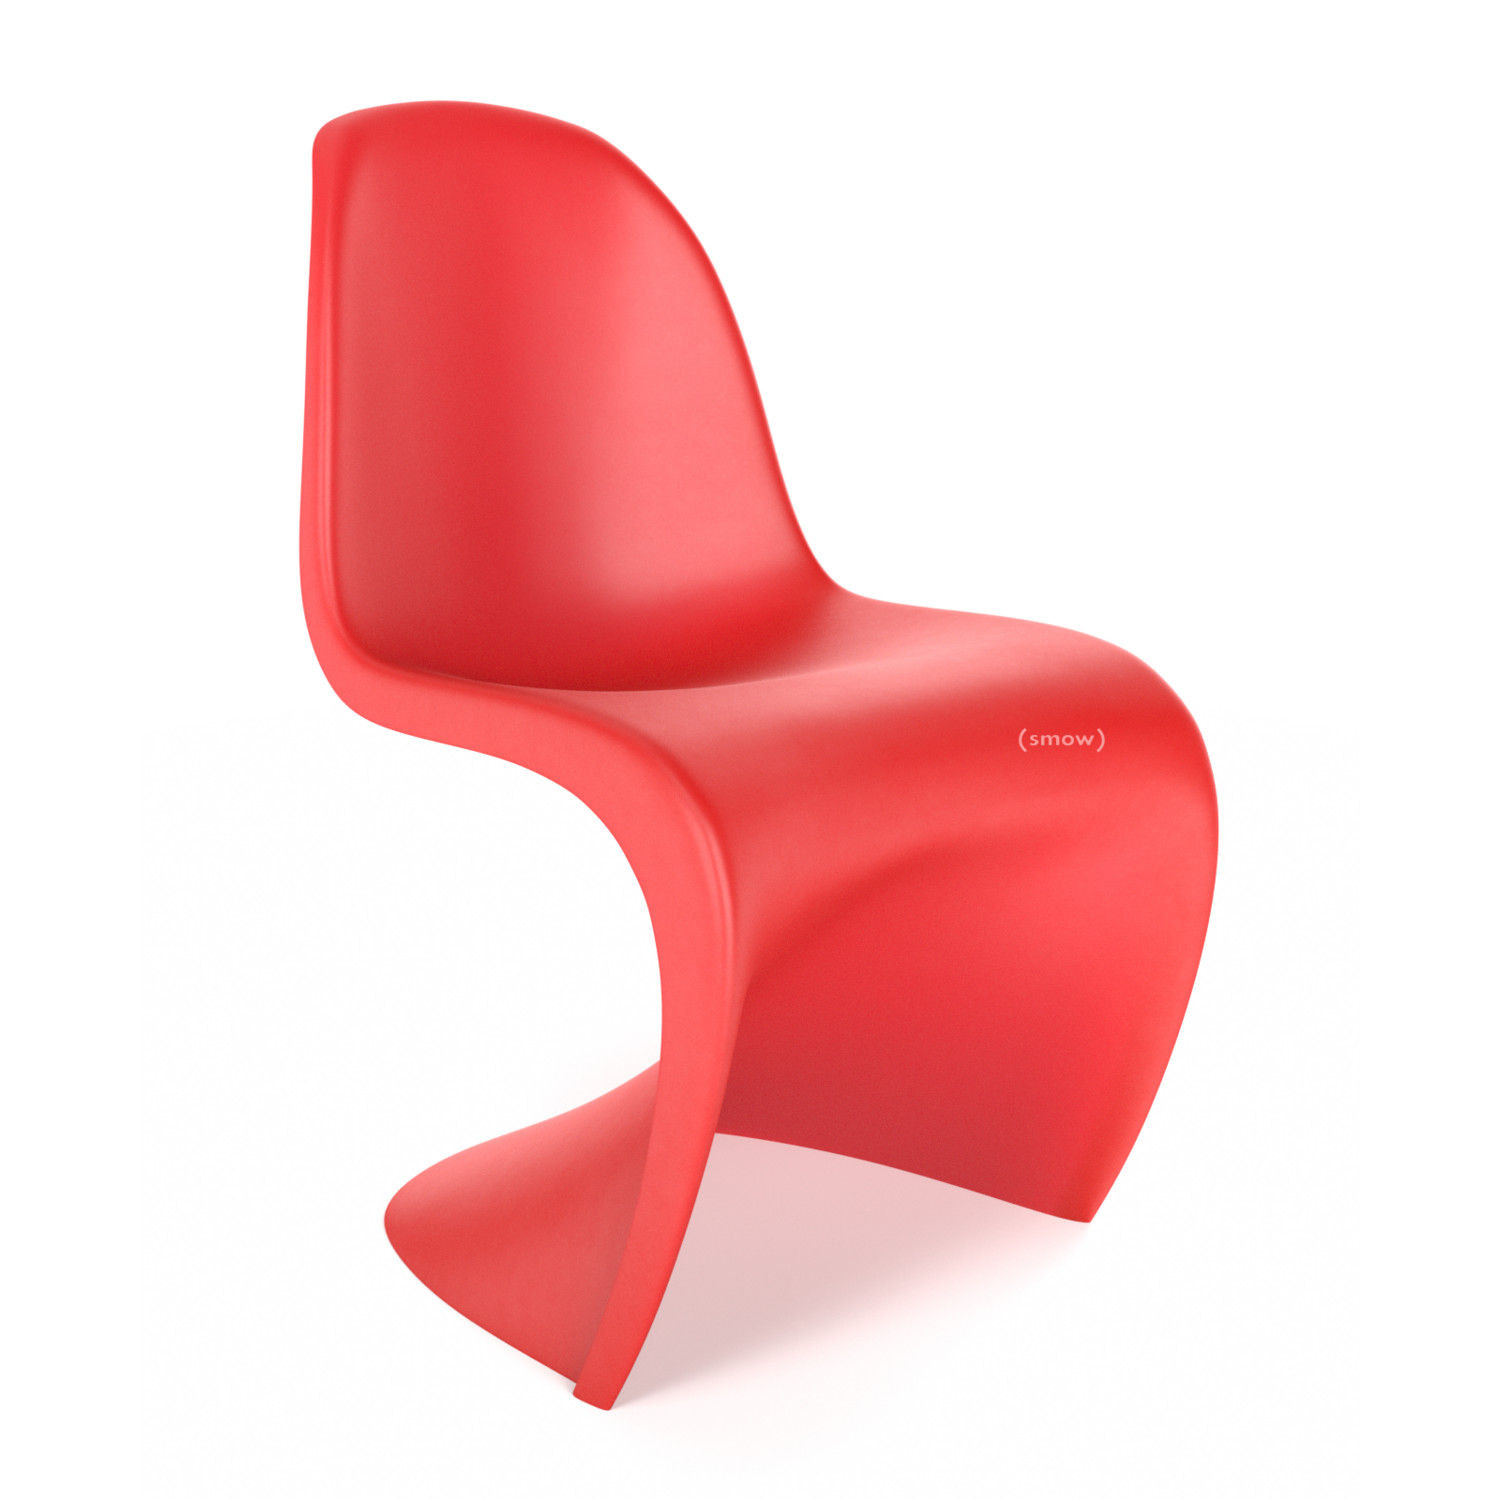 vitra panton chair classic red by verner panton 1999 designer furniture by. Black Bedroom Furniture Sets. Home Design Ideas